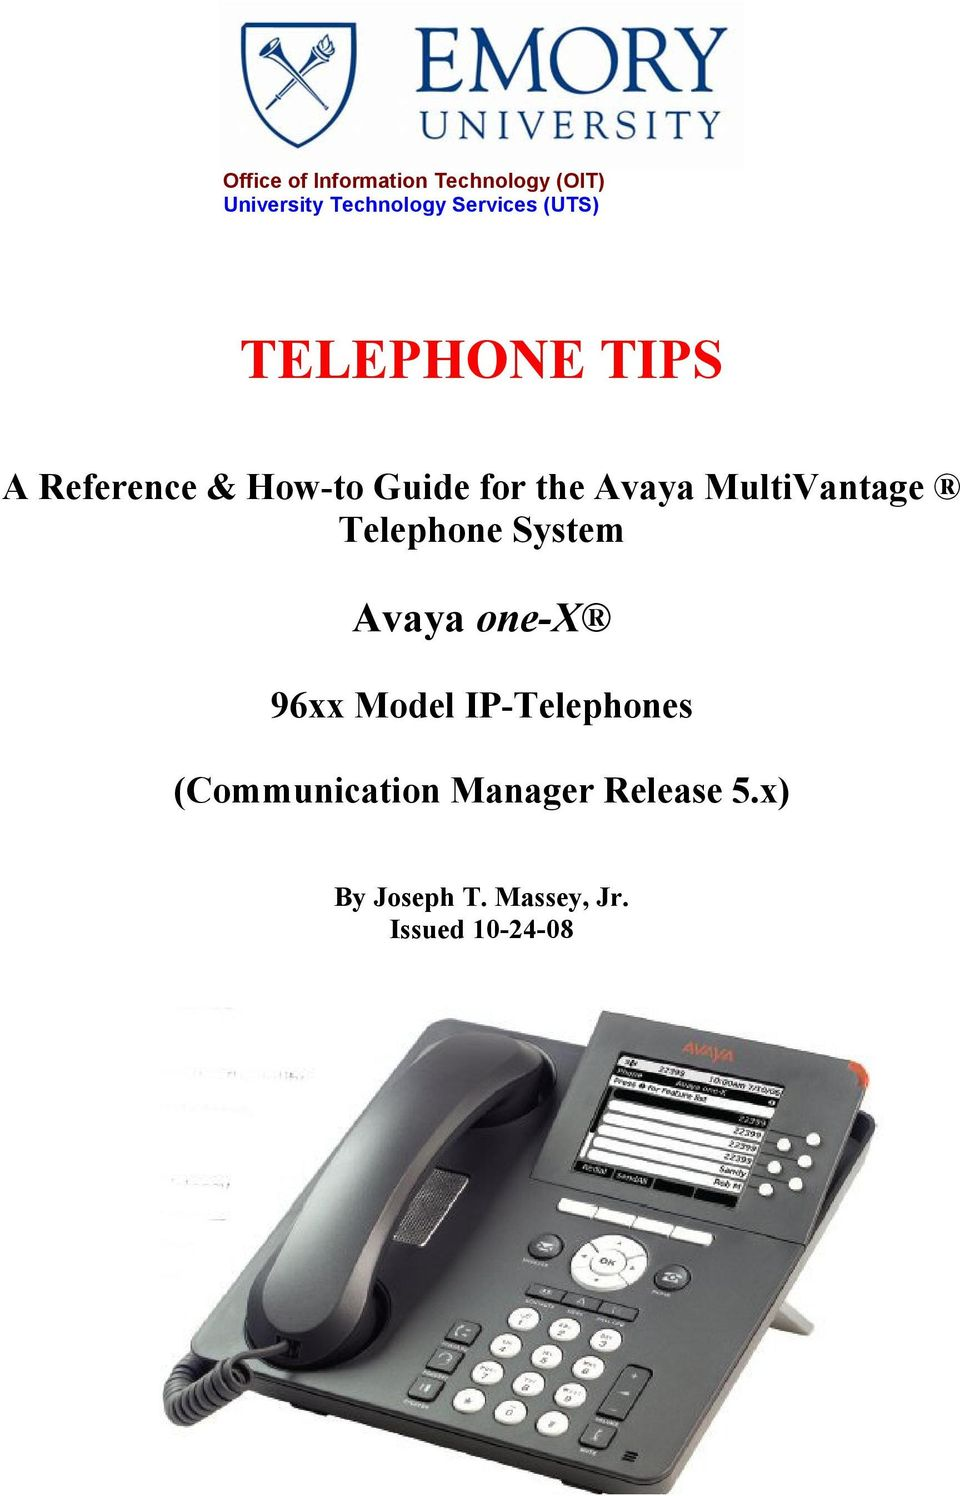 Avaya MultiVantage Telephone System Avaya one-x 96xx Model